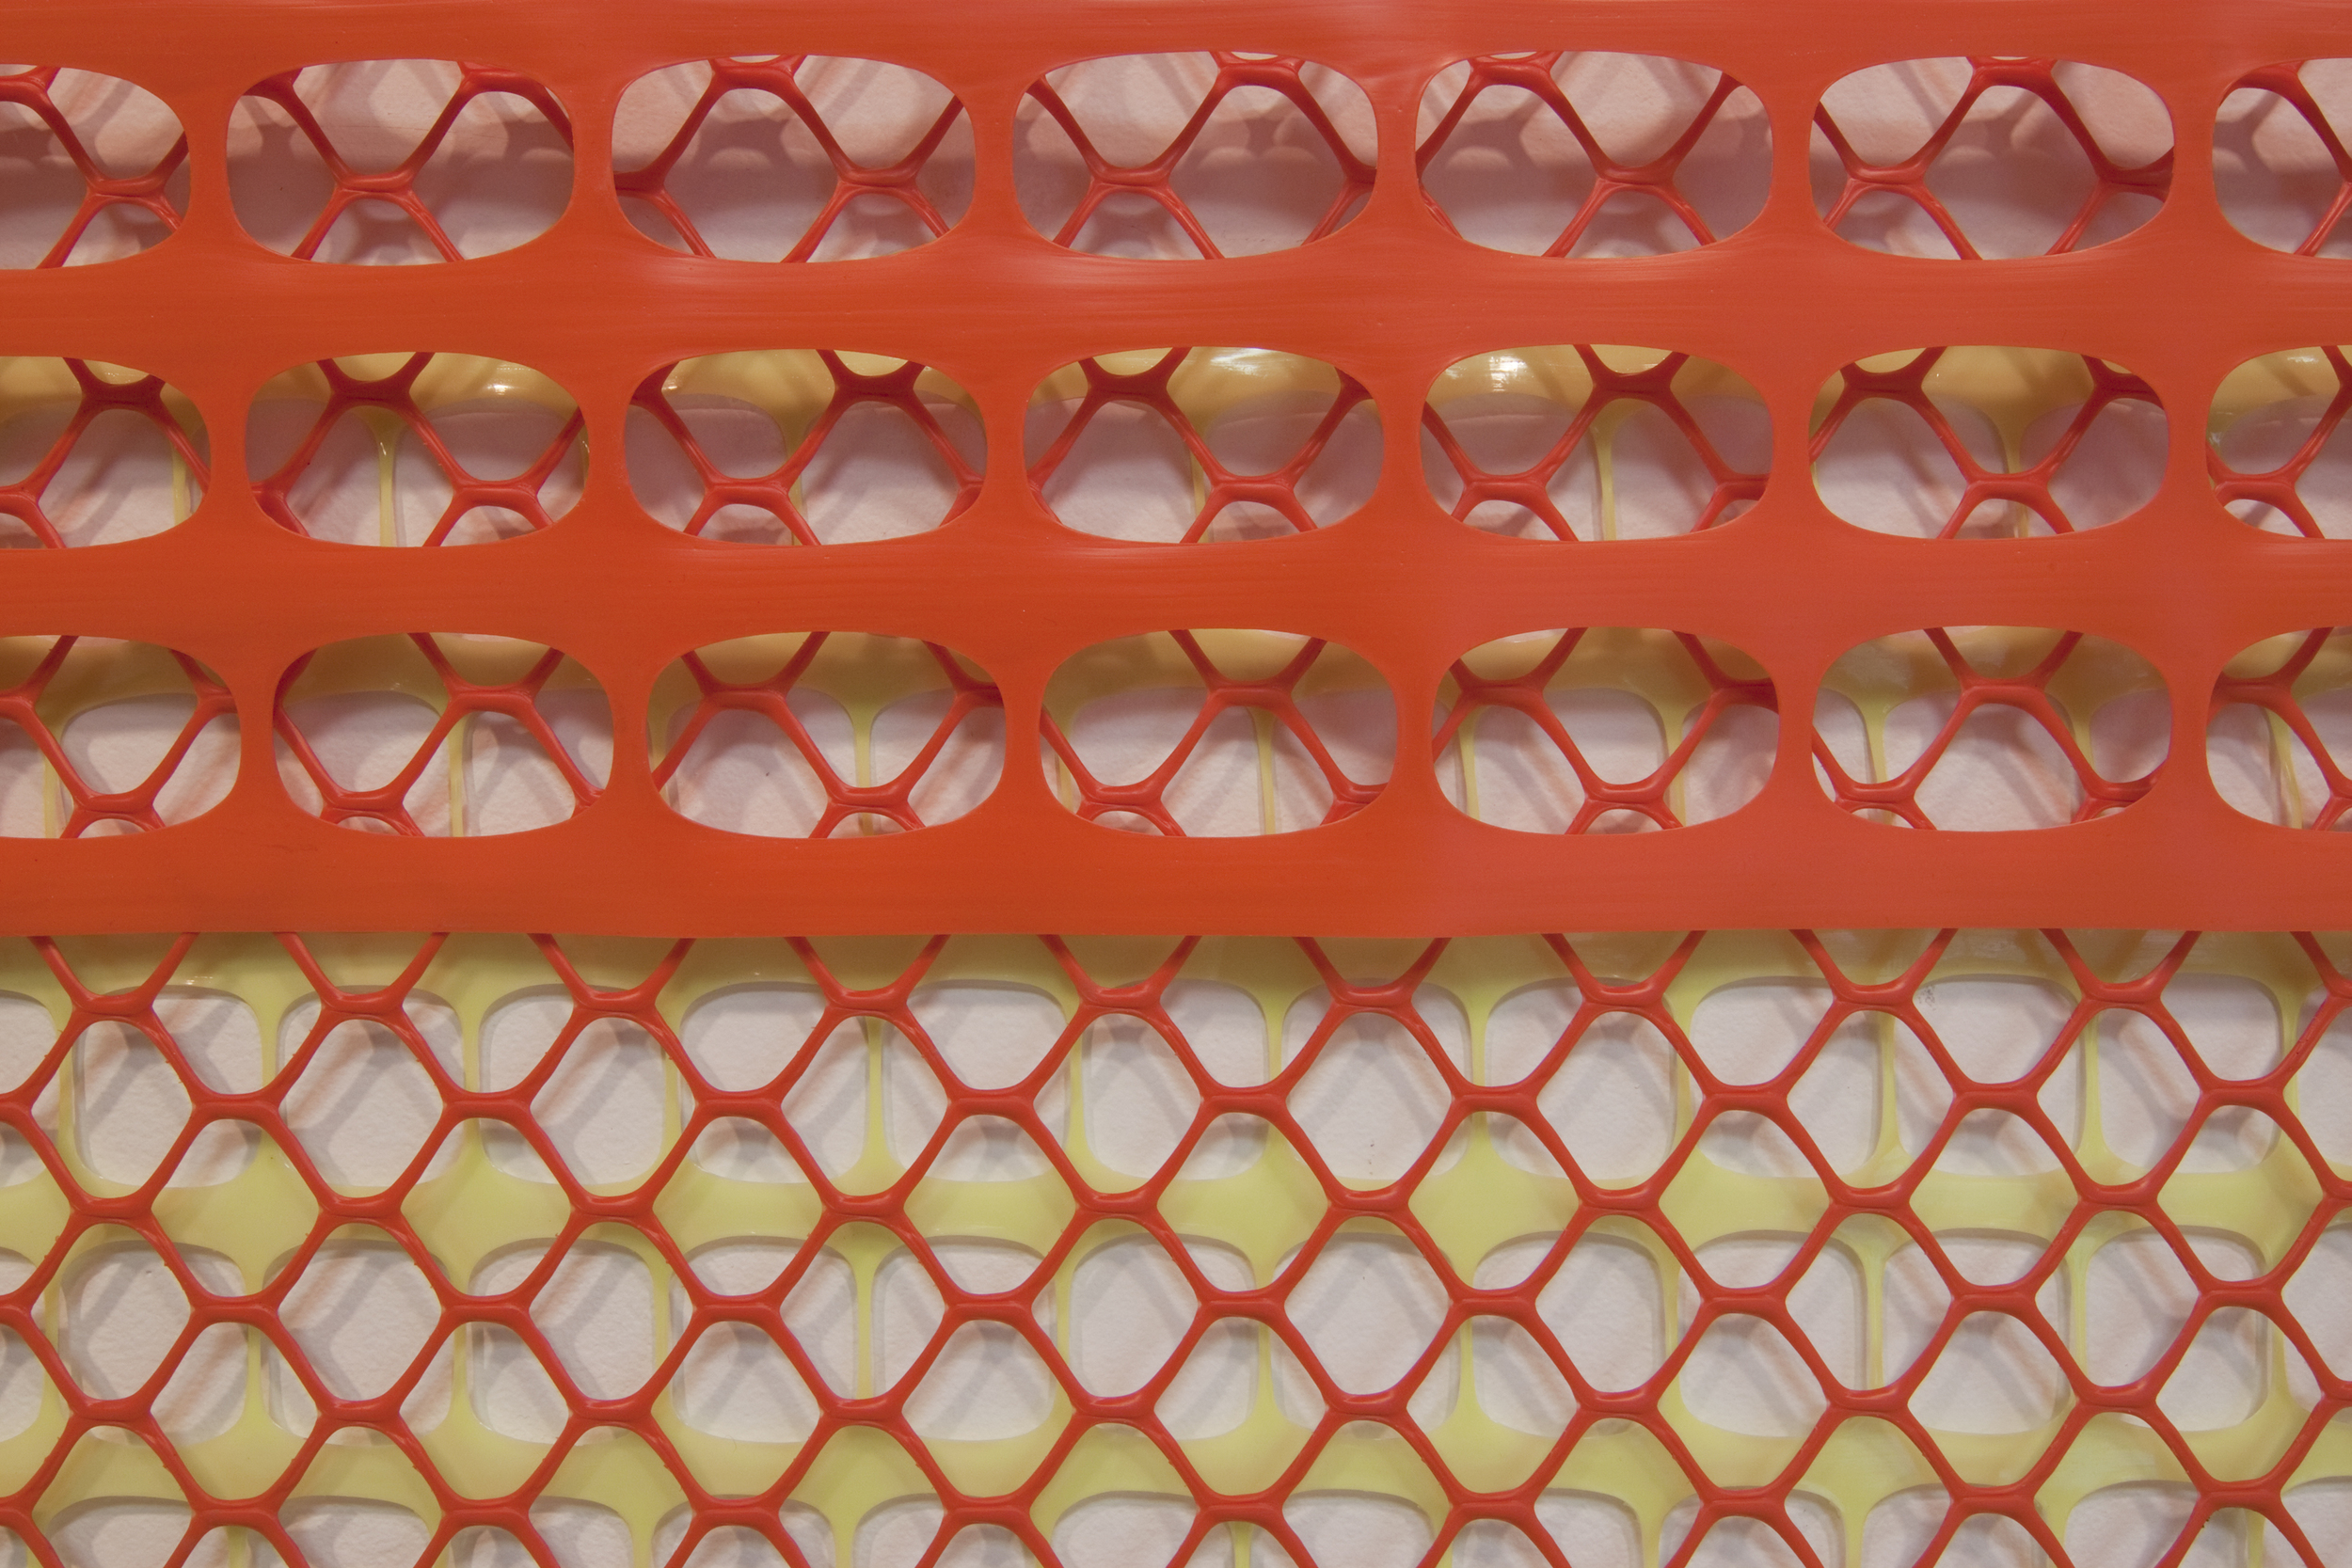 Construction/Safety fence (detail).